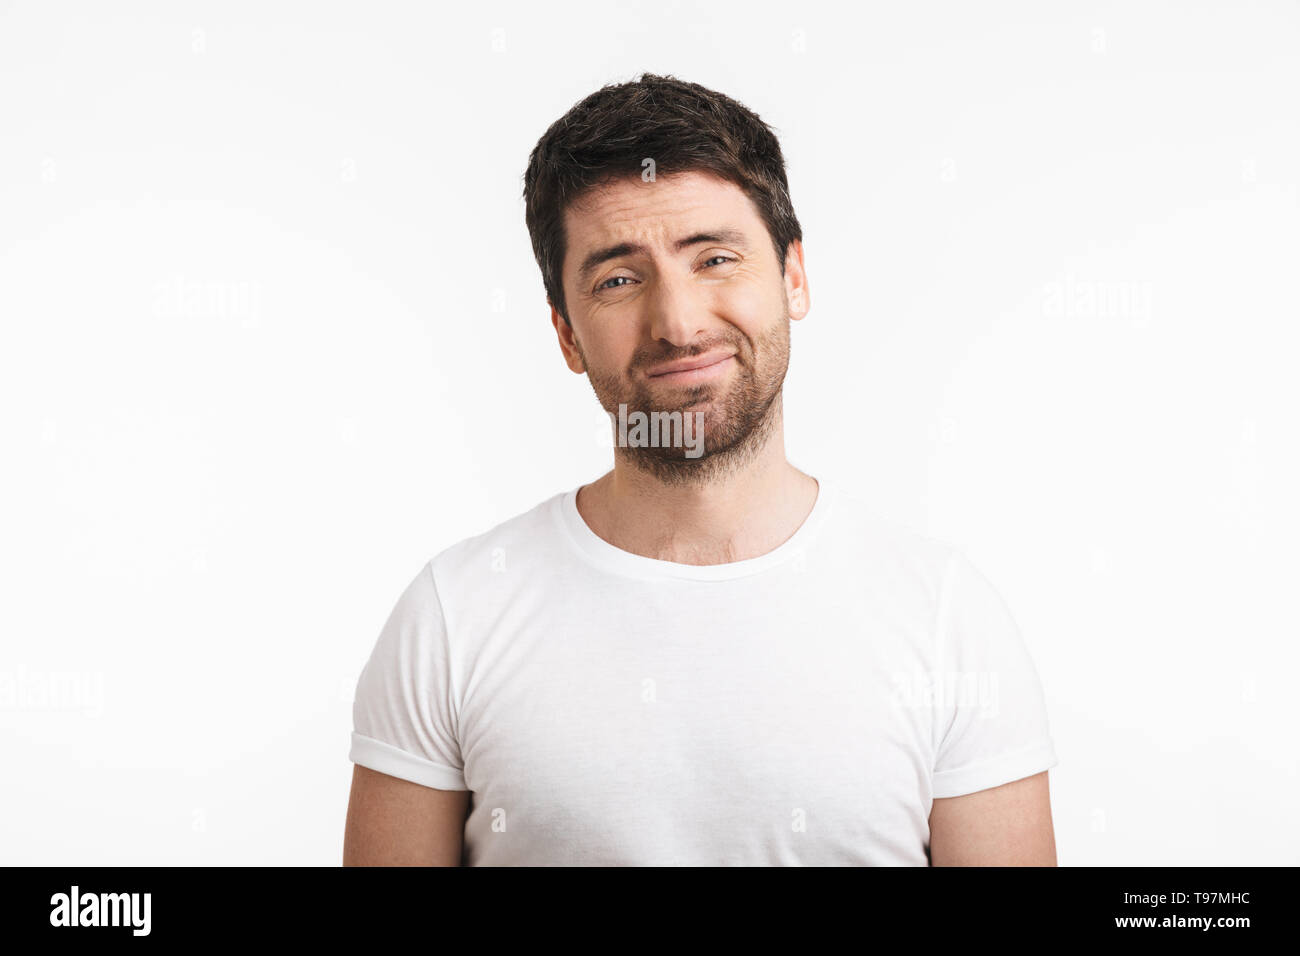 Image of unsure man 30s with bristle in casual t-shirt frowning and grimacing isolated over white background - Stock Image